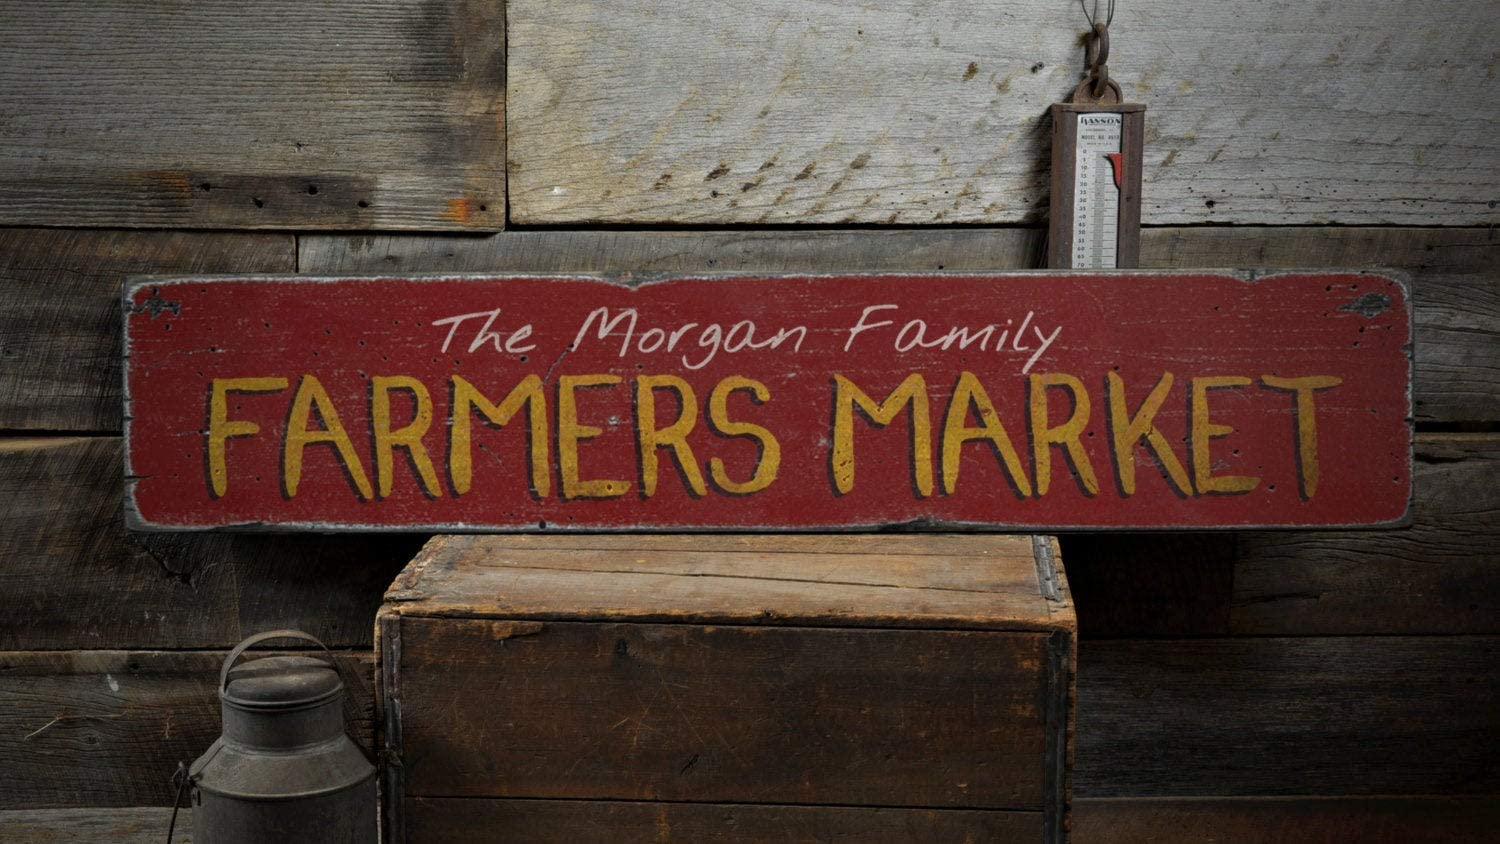 Tamengi Family Farmers Market Wood Sign, Custom Last Name Produce Stand Lover Gift, Kitchen Home Decor - Rustic Hand Made Vintage Wooden Sign Home Decor,Produced in The U.S.